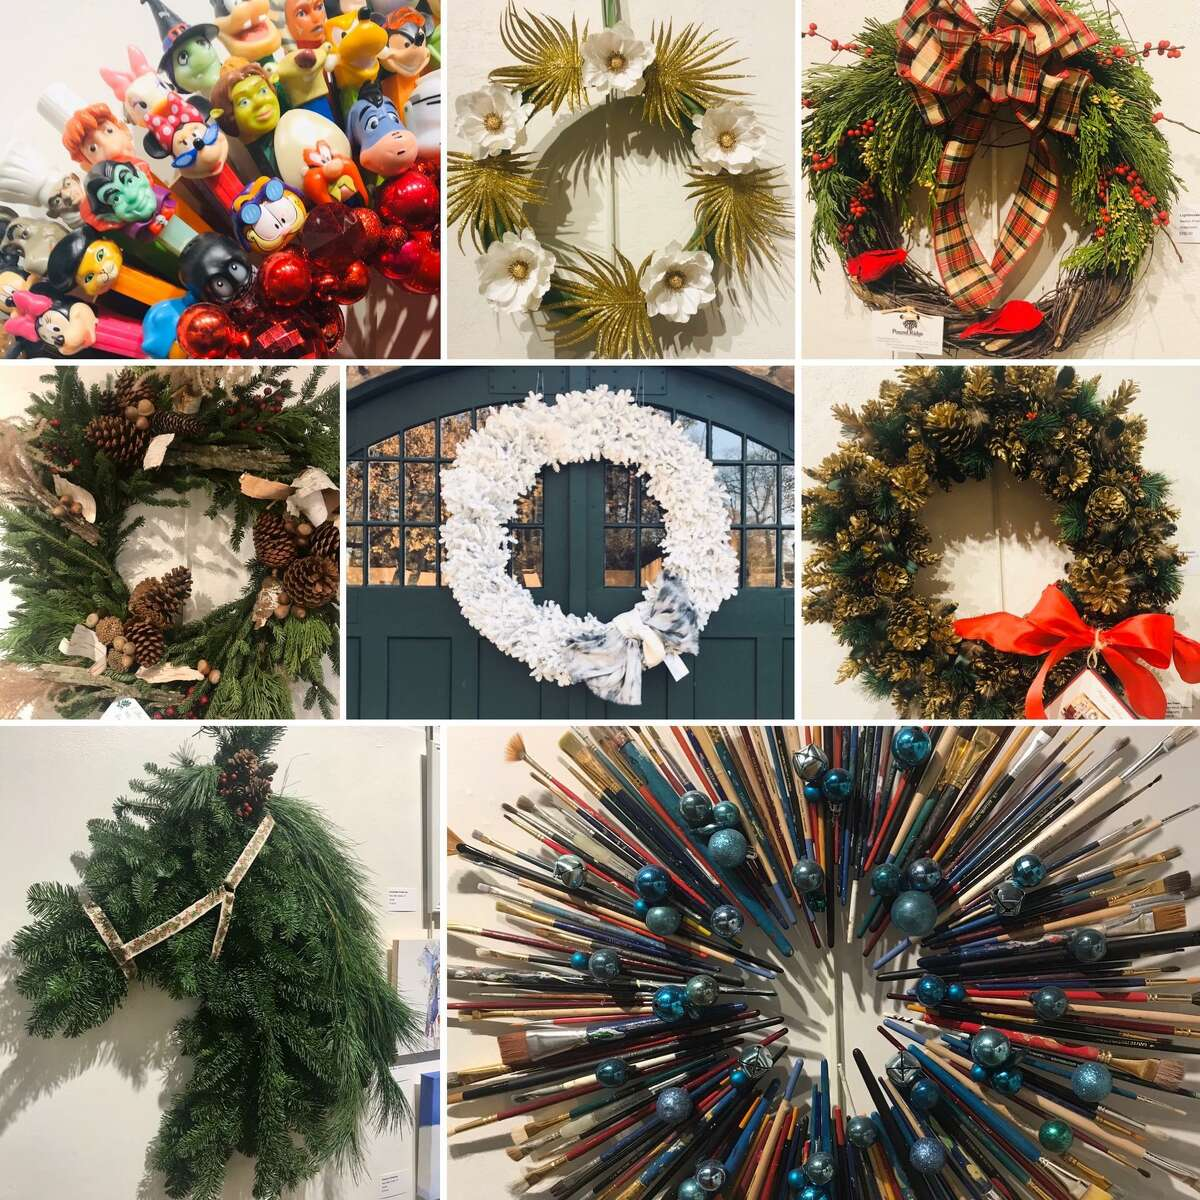 The Carriage Barn Art Center's 5th annual wreath auction and small works exhibit, Deck The Walls, opens Nov. 29, the first Sunday after Thanksgiving. The exhibit is opening on the same day as the Carriage Barn's Artist Sunday event.